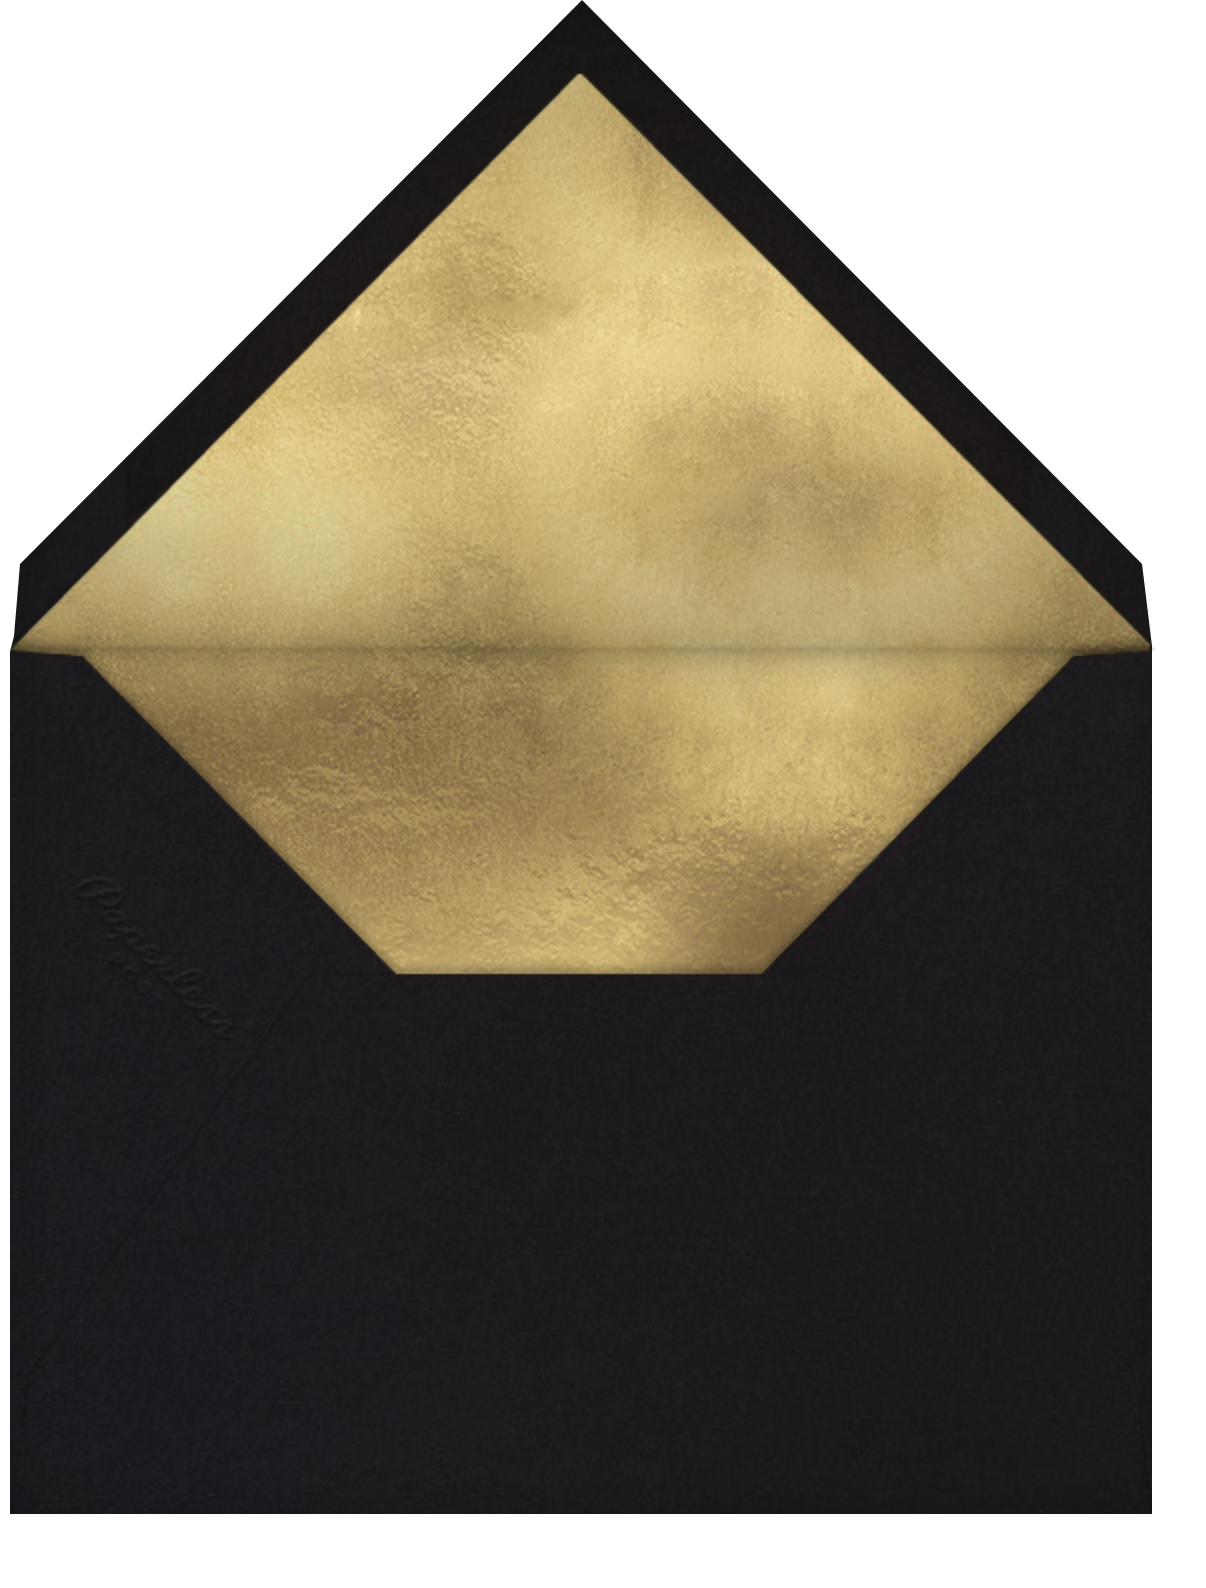 Bookends - Paperless Post - Graduation party - envelope back